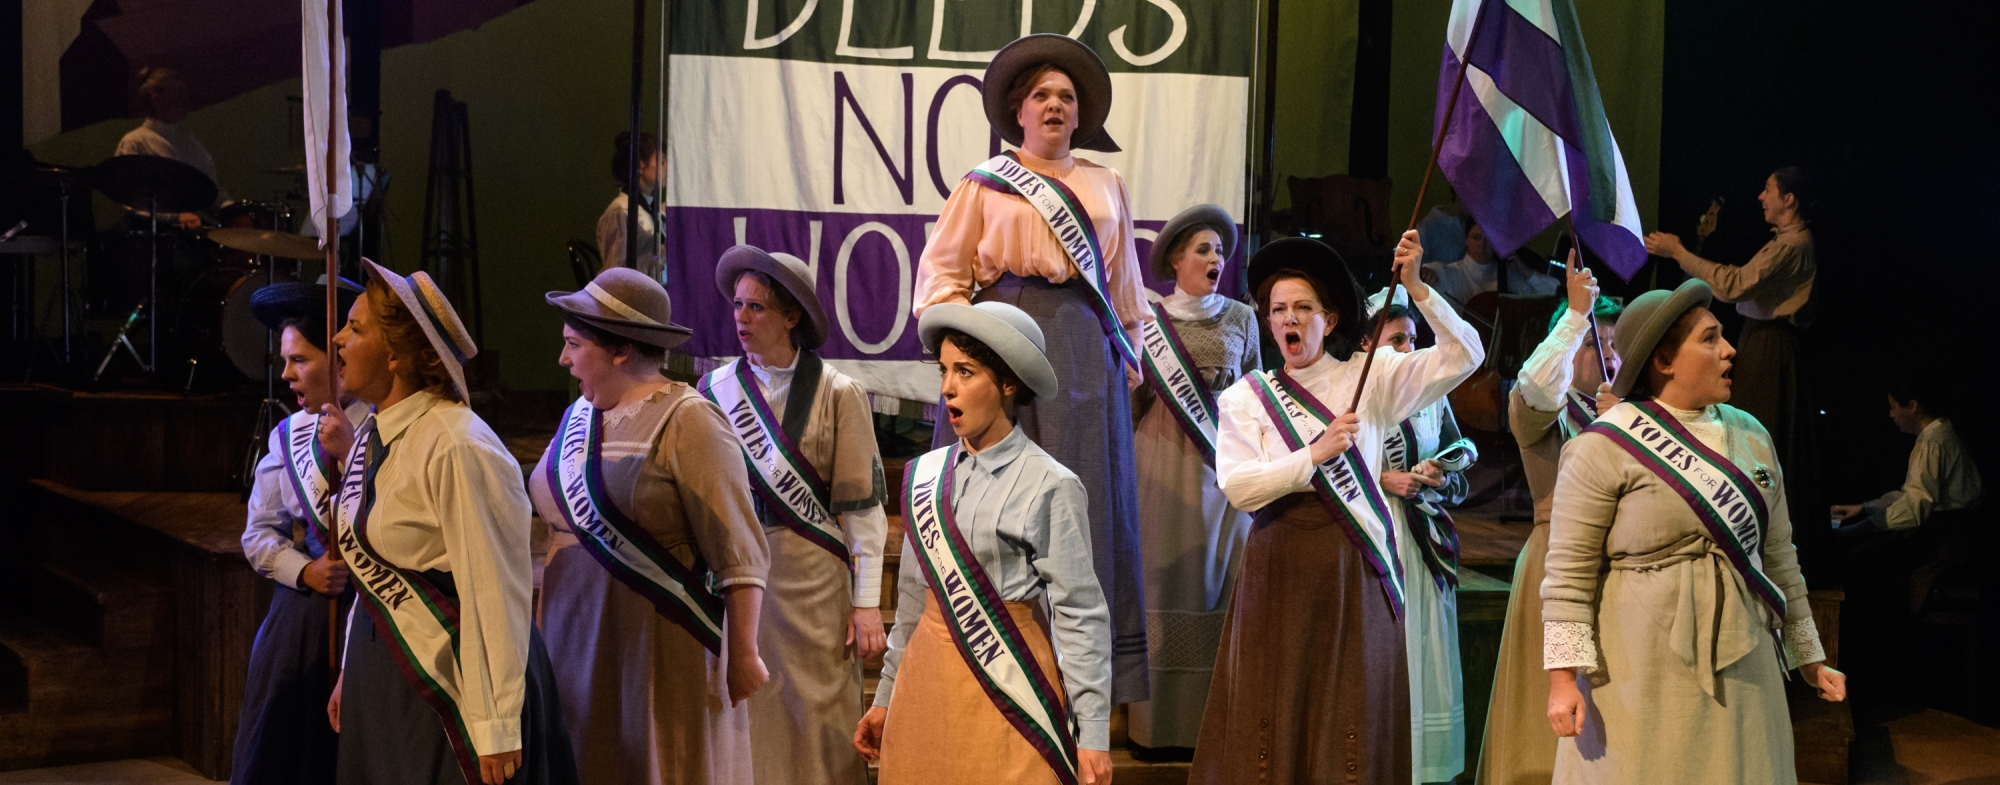 The women's chorus are in traditional dress, marching in front of a green, white and purple 'Deeds Not Words' banner. They are waving green, white and purple flags and wearing Vote for Women Sashes